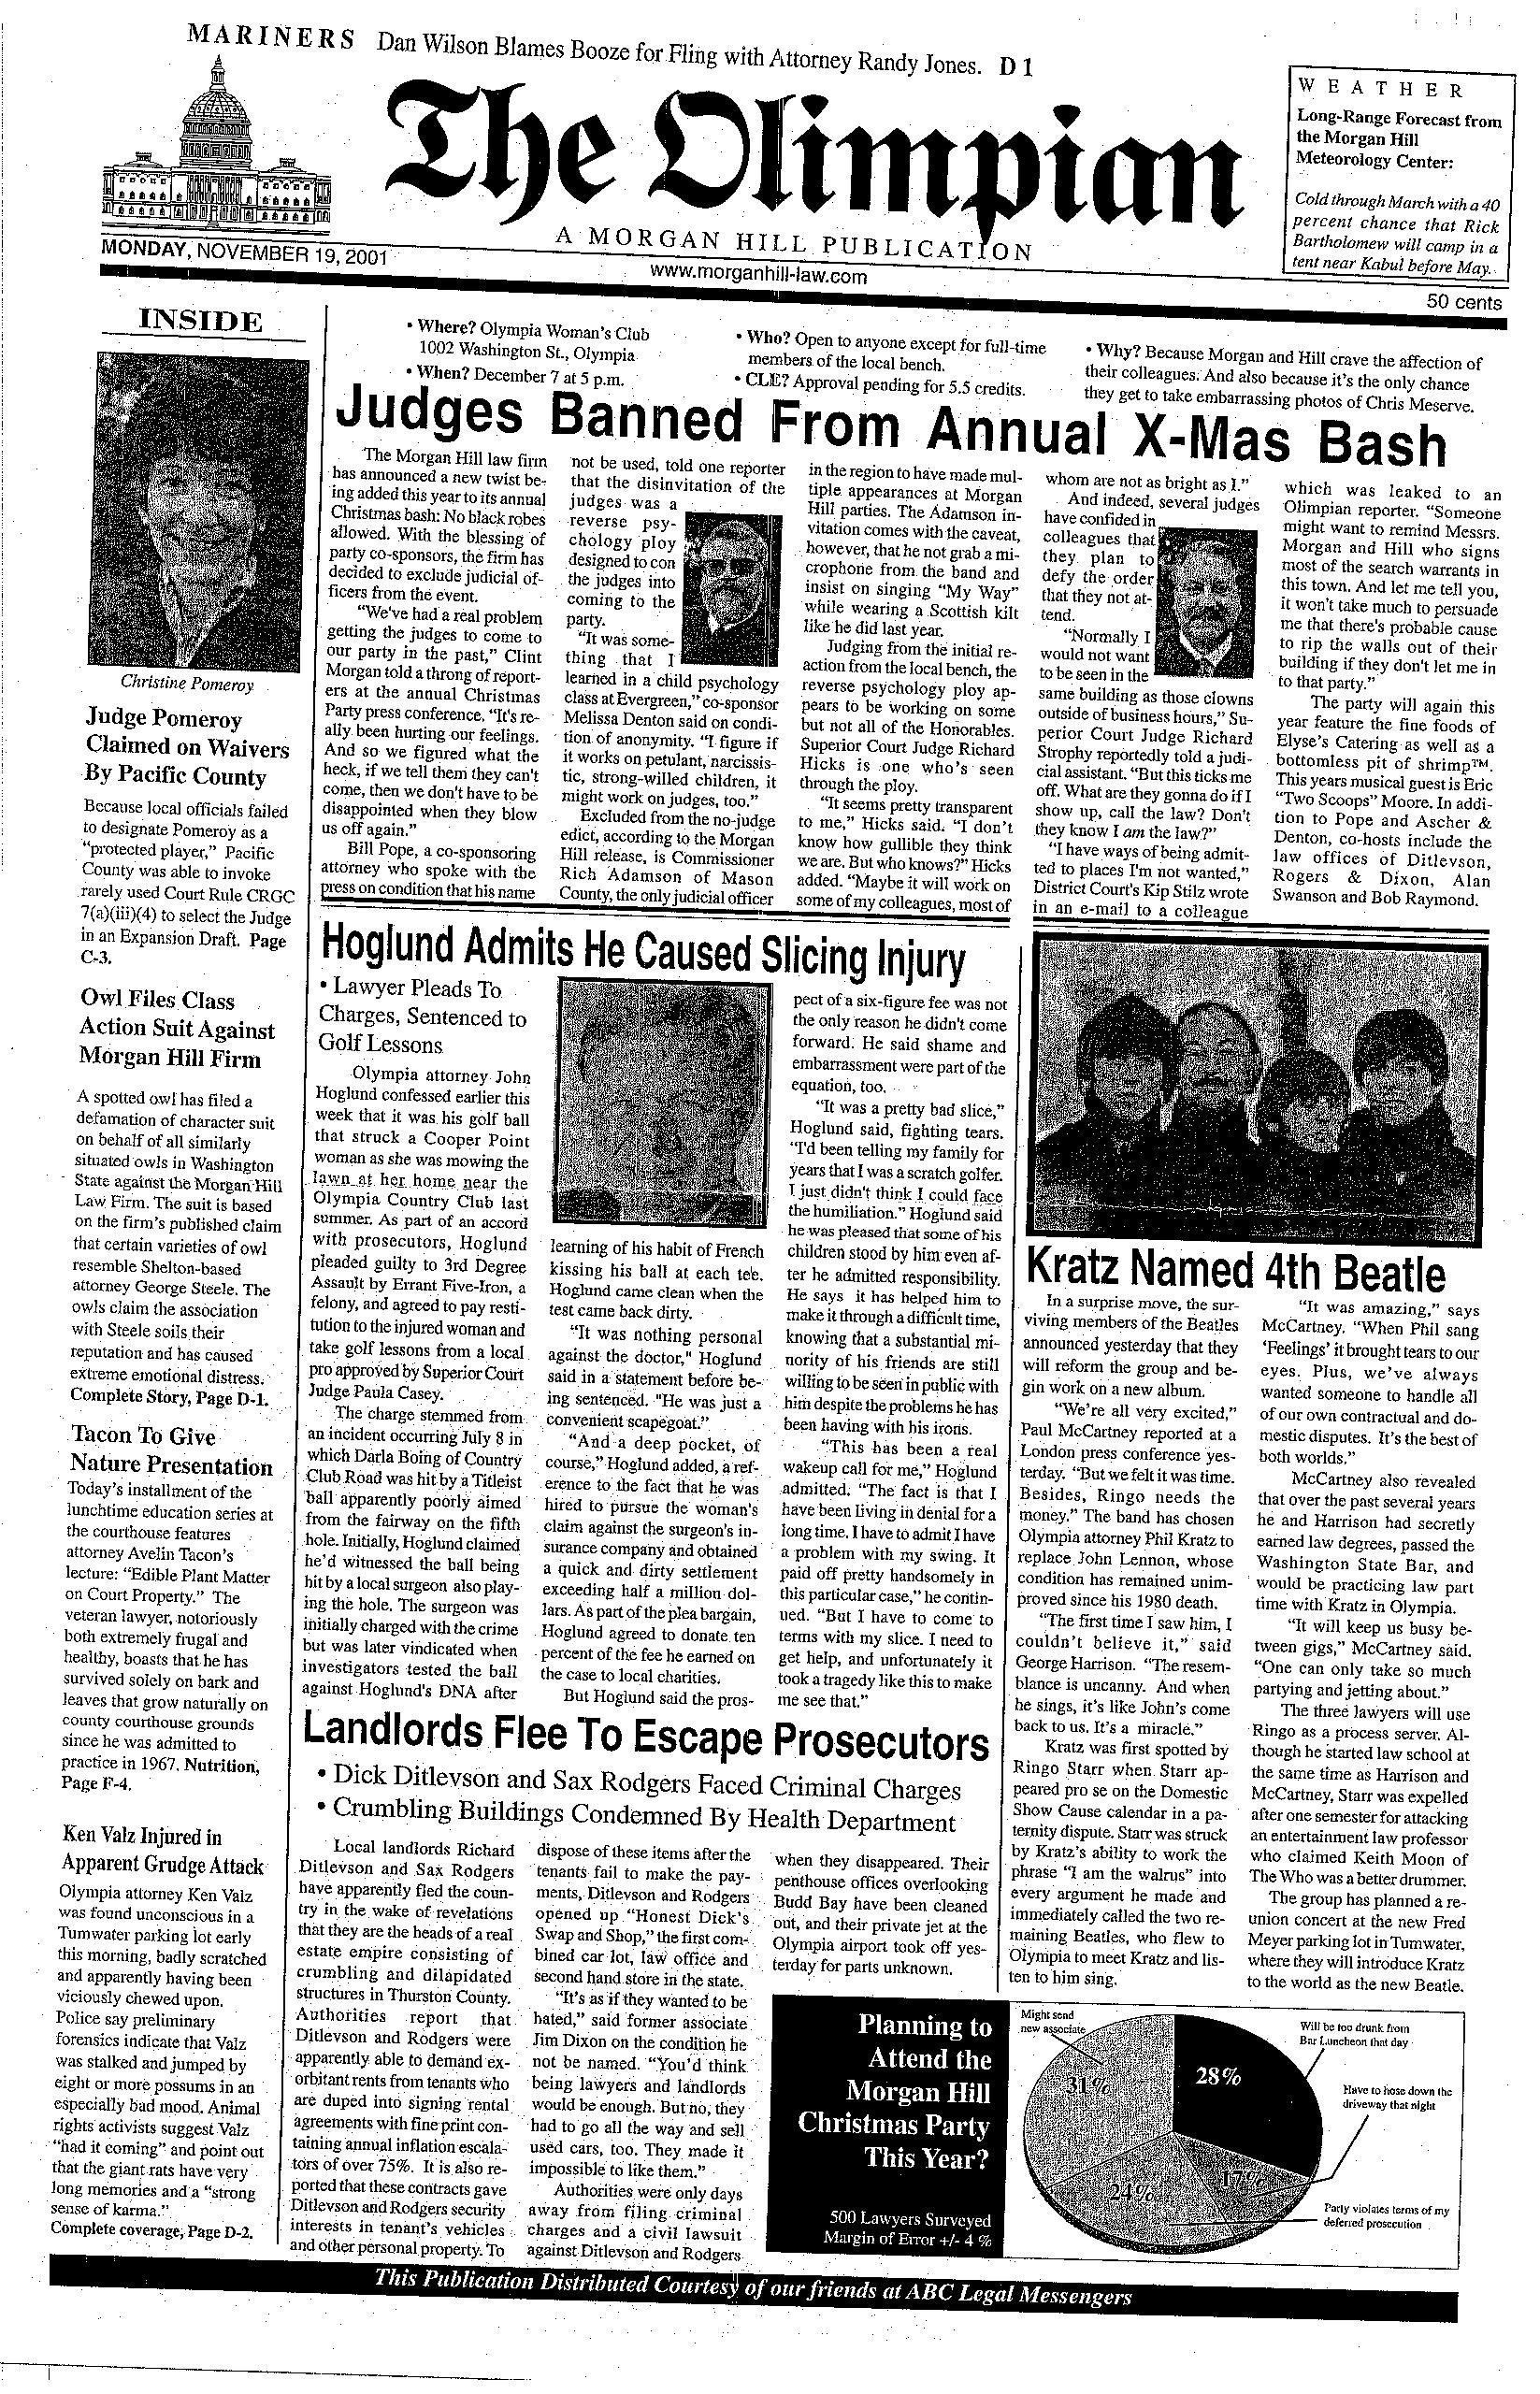 Issue 2001